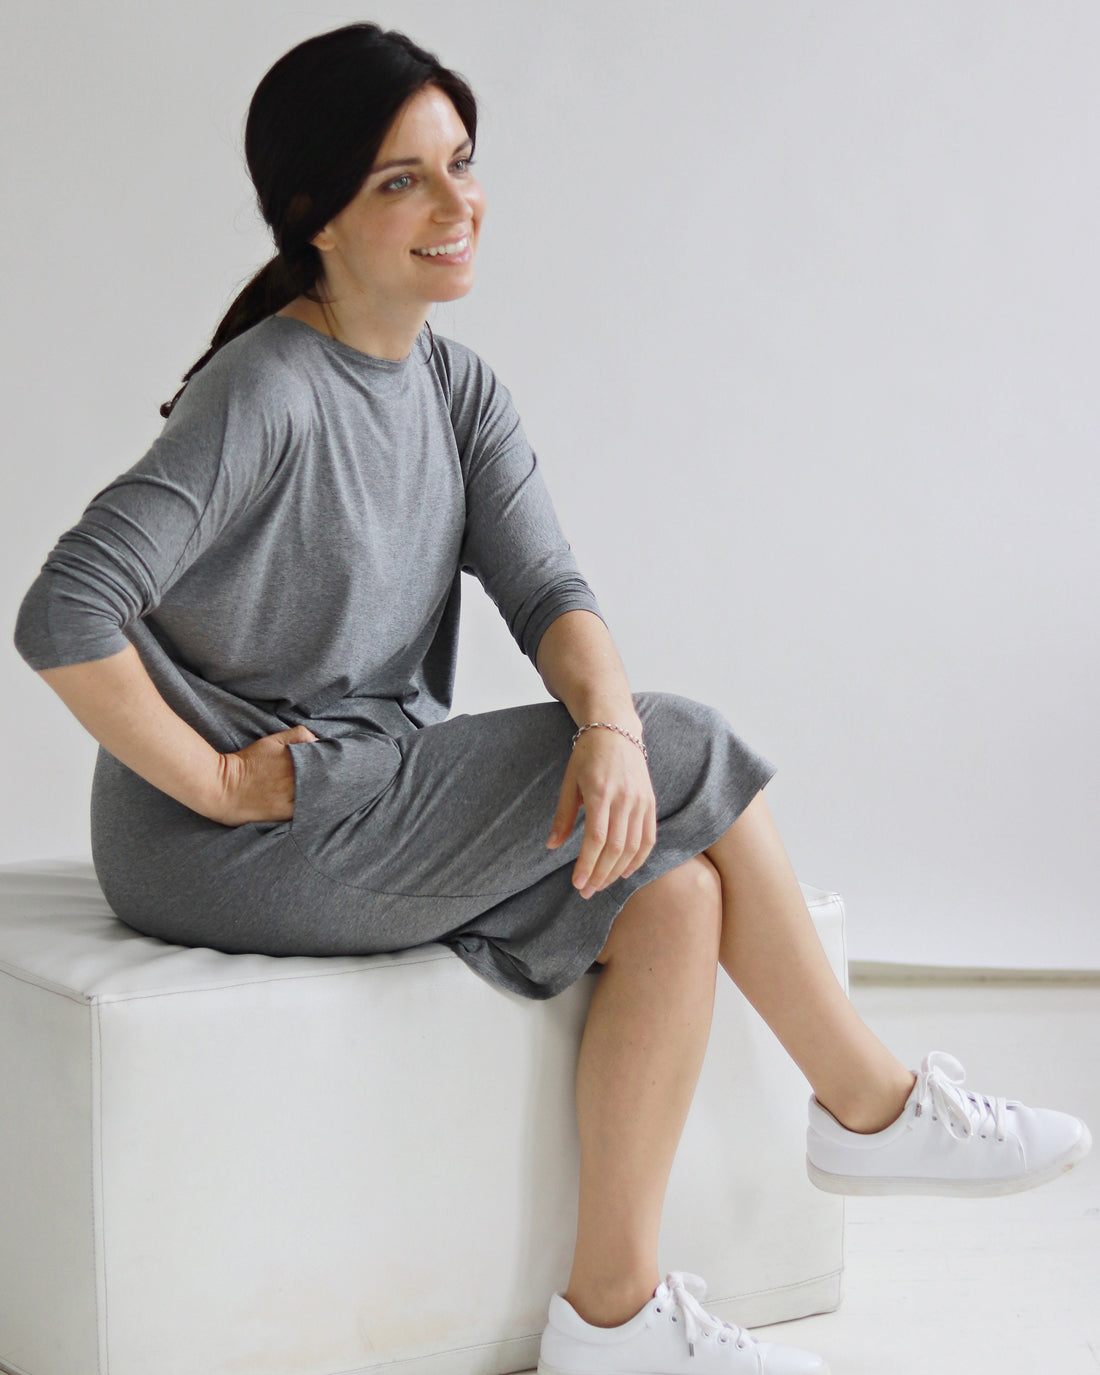 Yaffa Grey Melange Dress - Sarah Feldman Cape Town